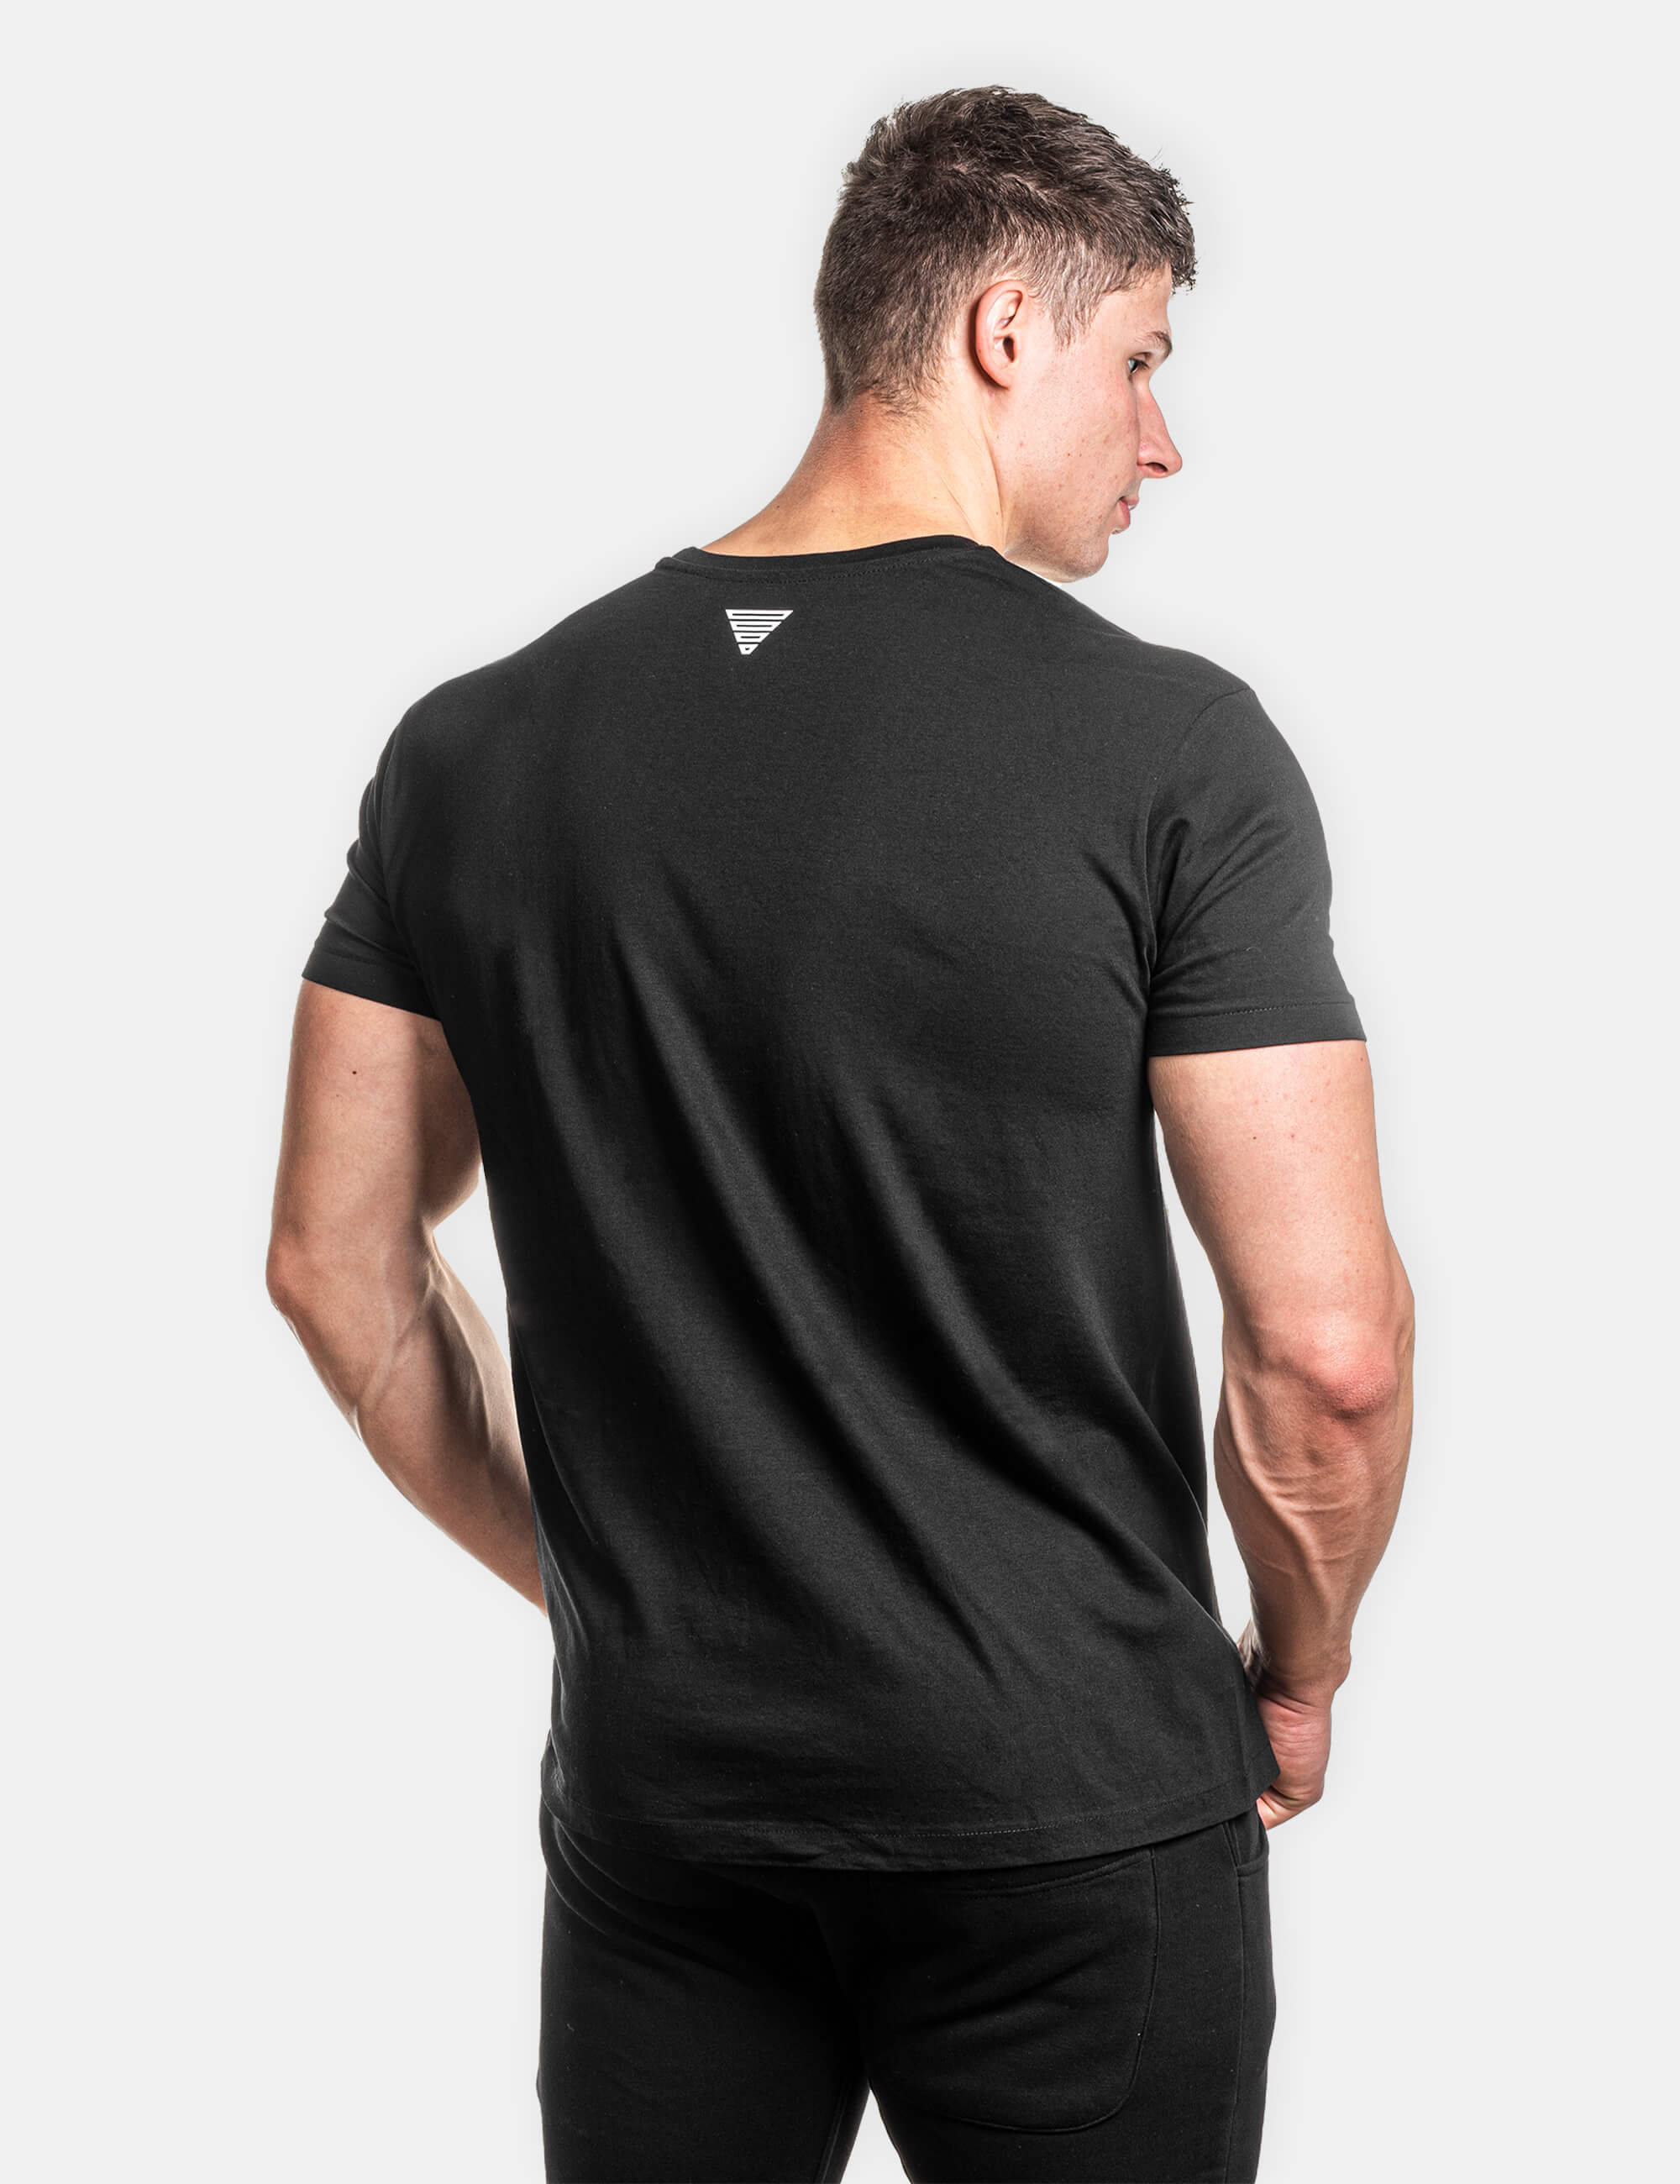 Classic Street black shirt from Gornation. Worn by a calisthenics athlete, frontal view.